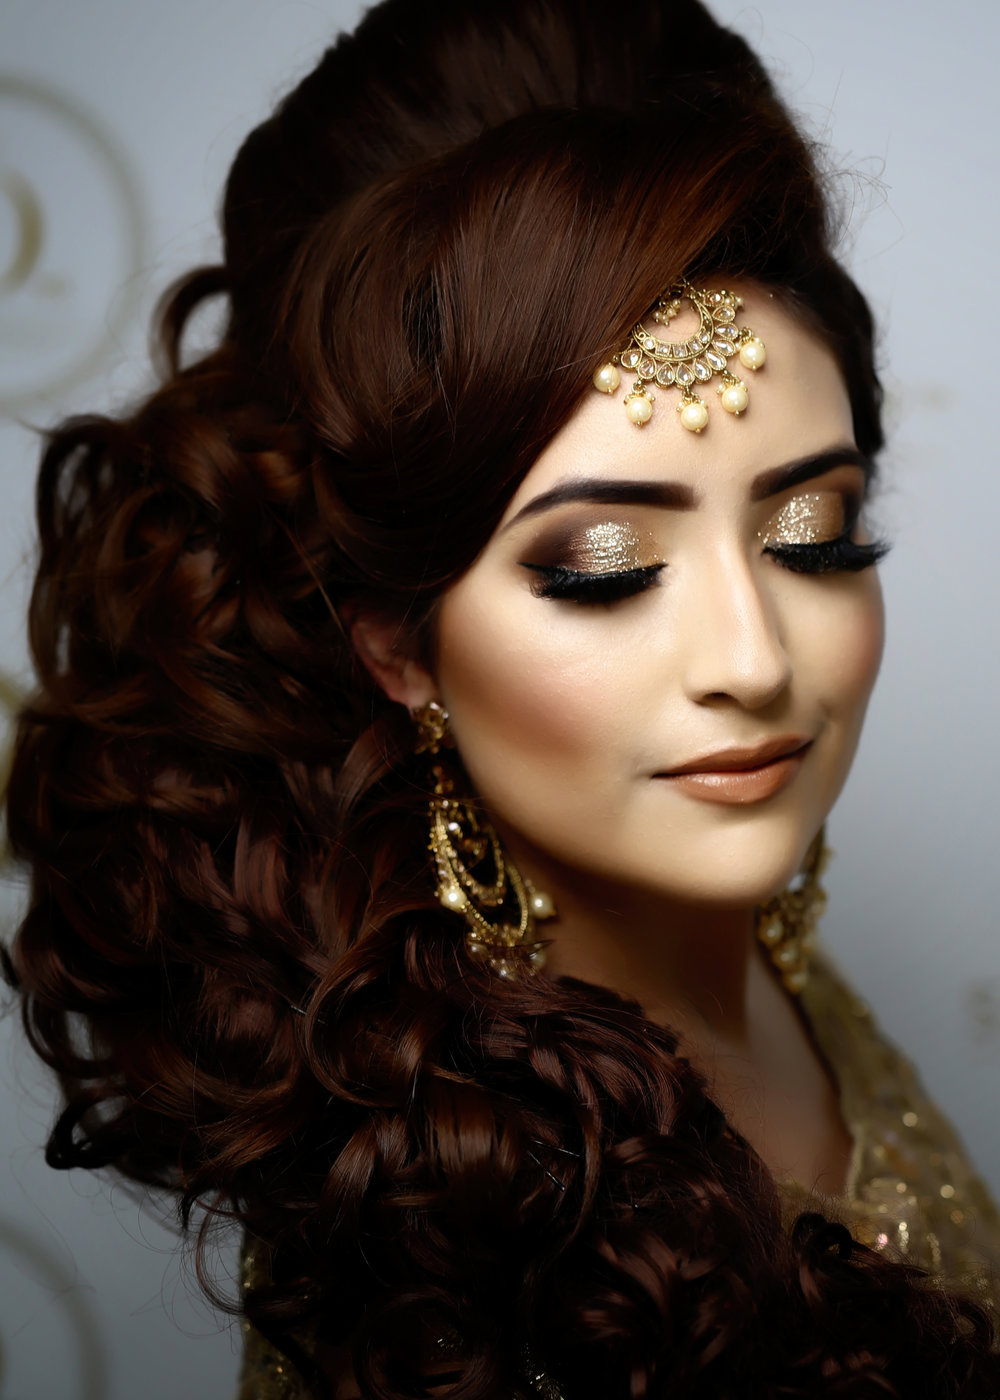 2 DAY - BRIDAL MAKEUP APPLICATION: - Summary:- Day/Natural Makeup- Evening/Party- Registry/Walima- Traditional BridalFEES: £695